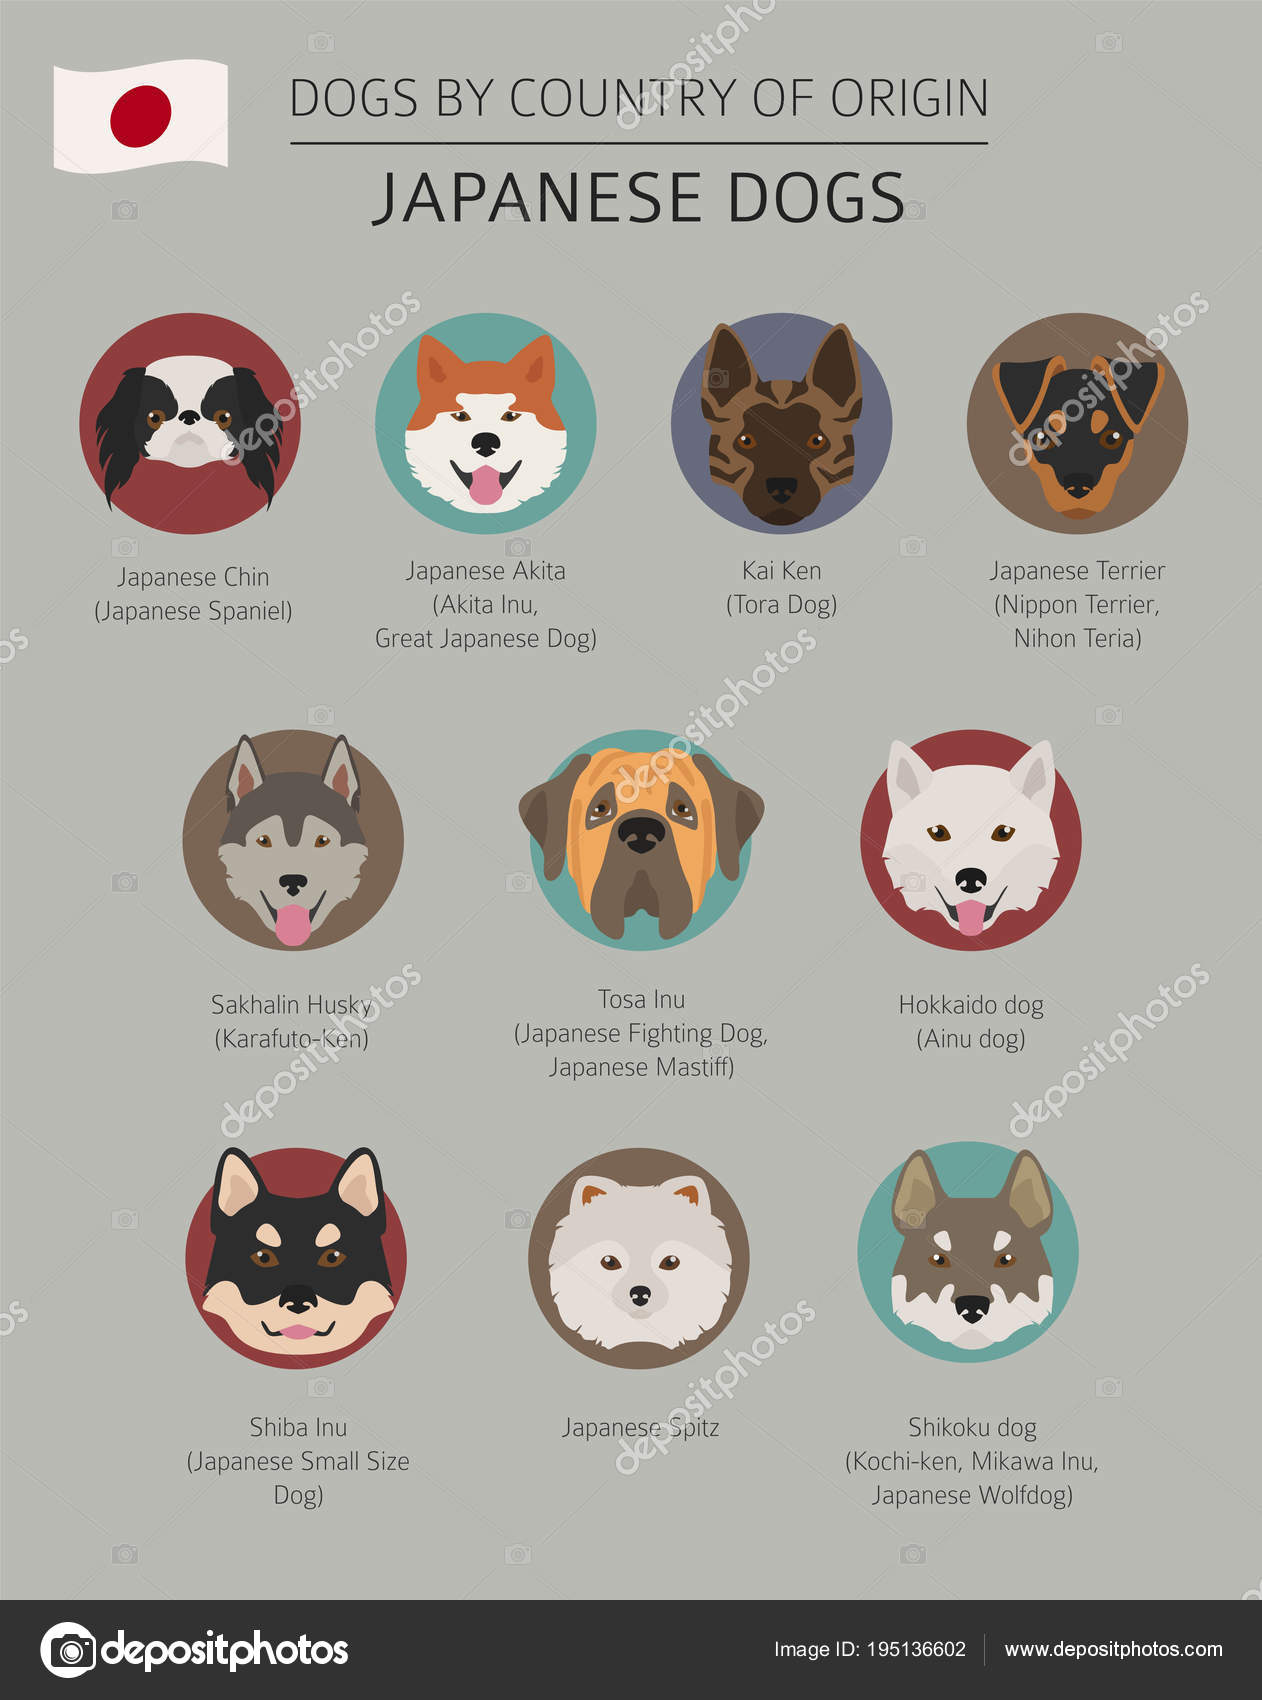 Dogs By Country Of Origin Japanese Dog Breeds Infographic Temp